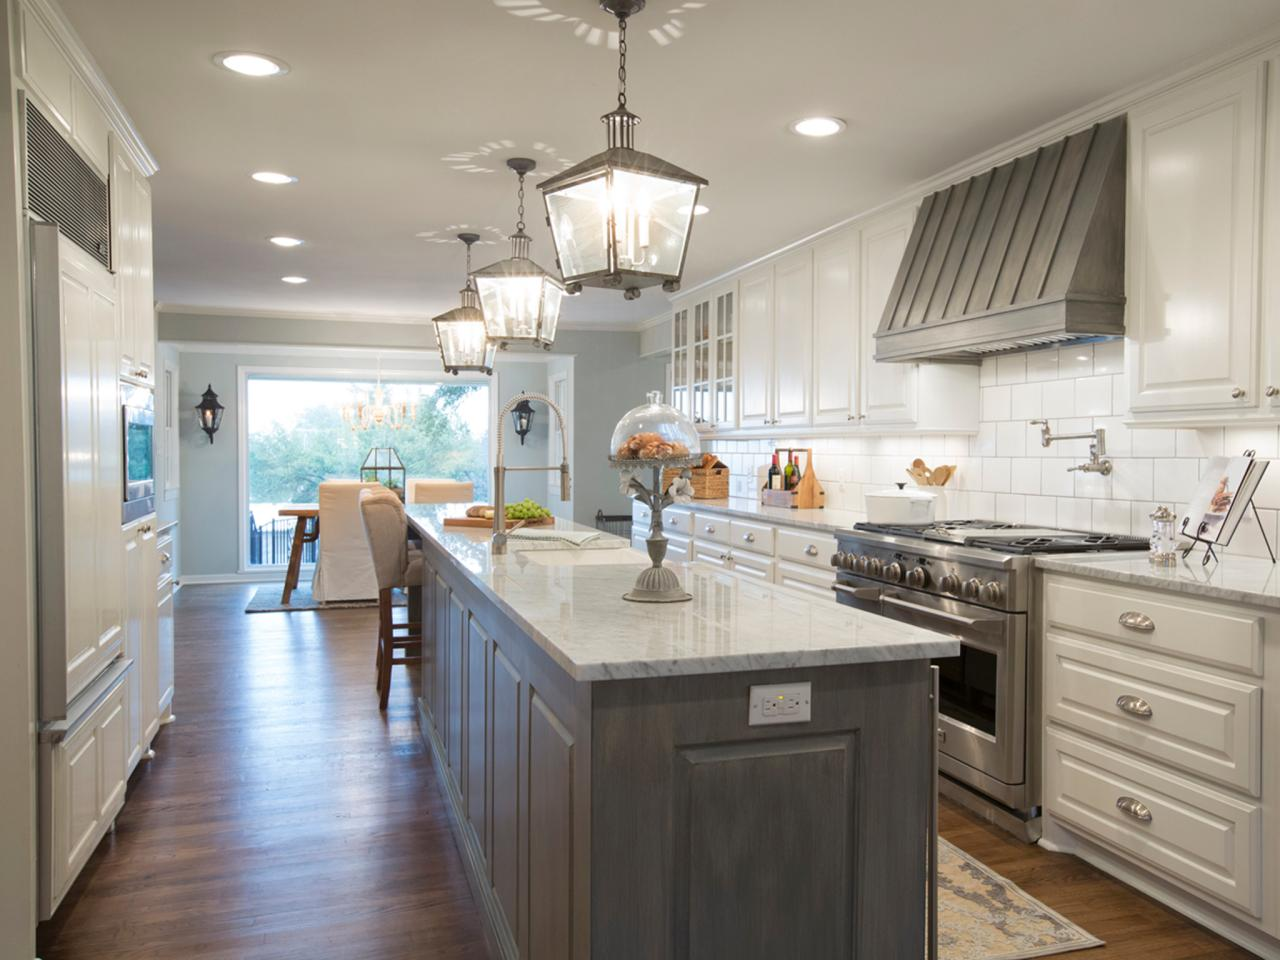 Before and after kitchen photos from hgtv 39 s fixer upper for Hgtv kitchens